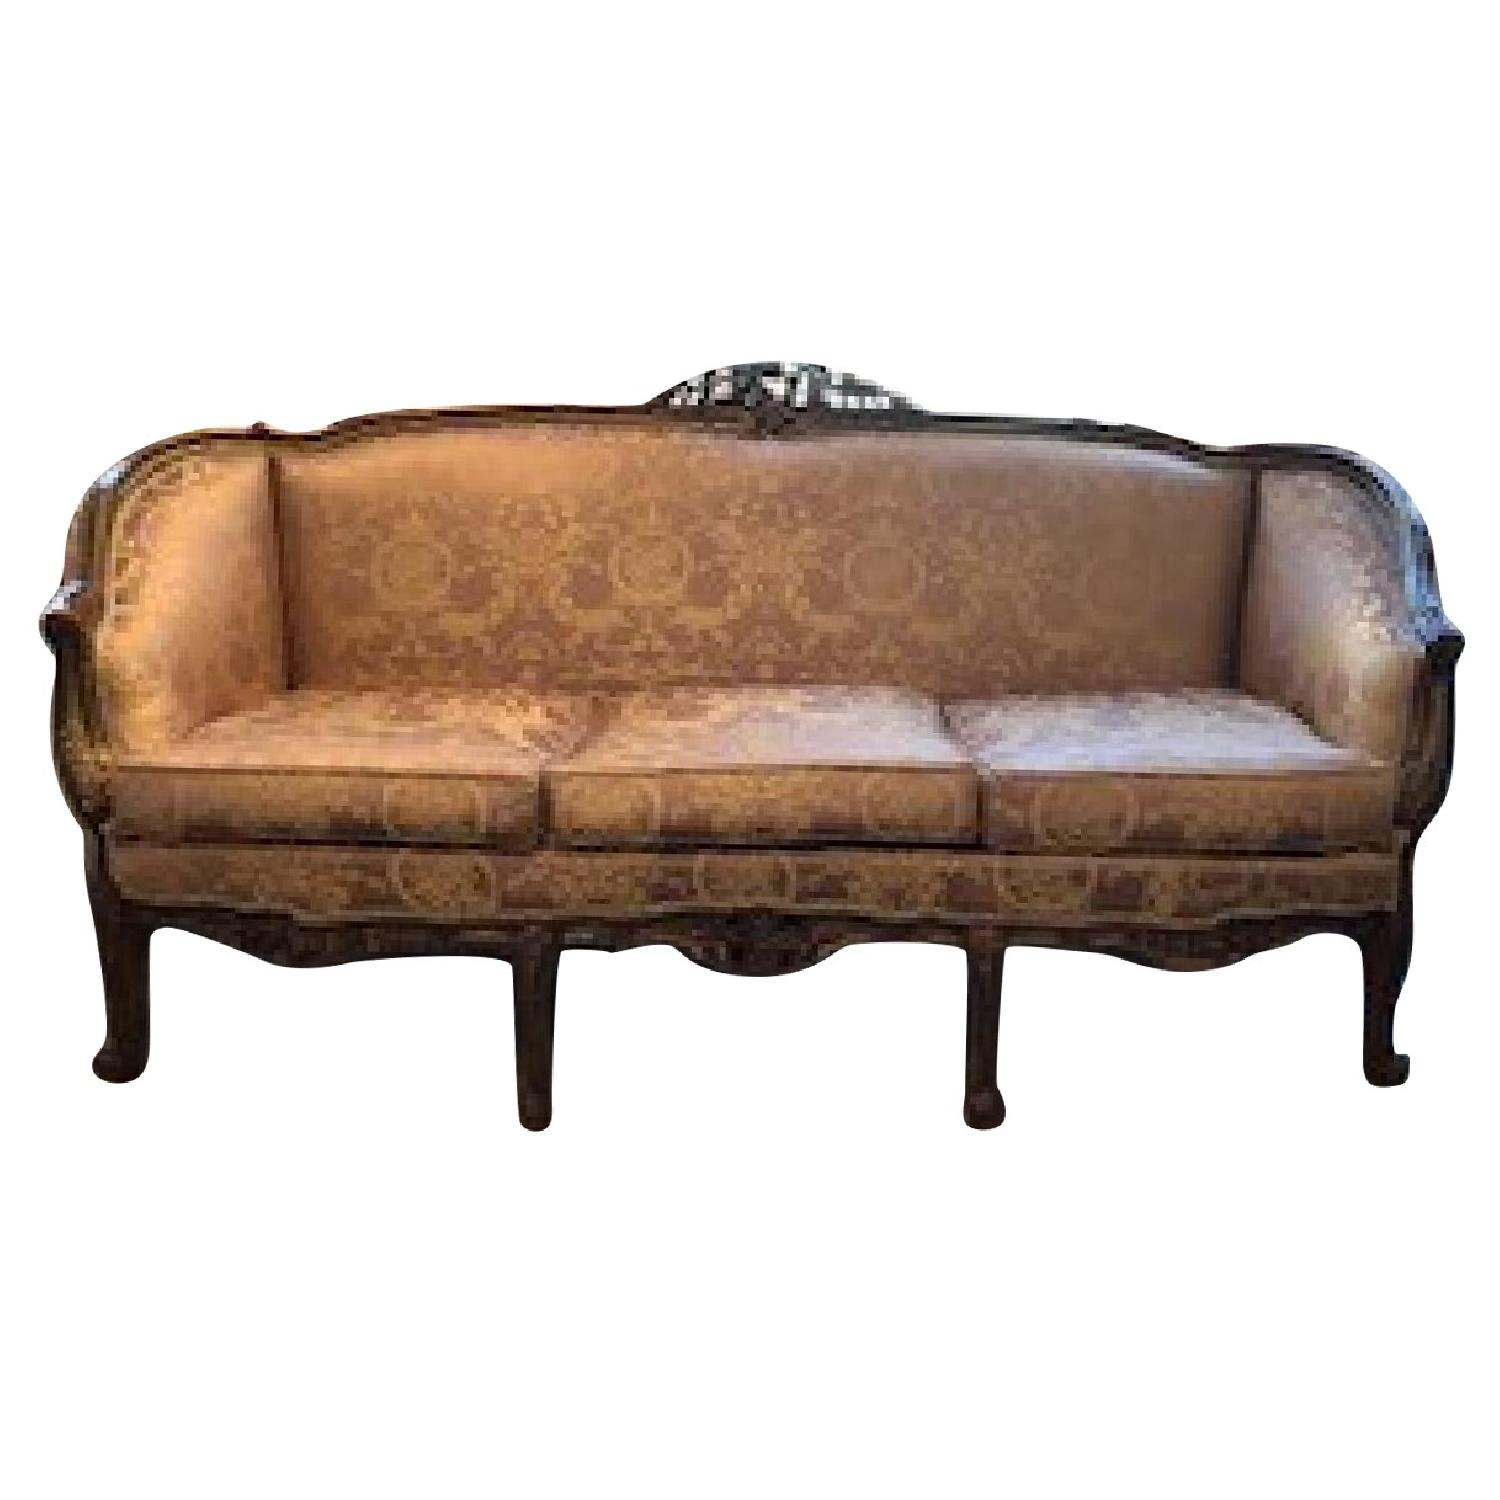 Gold Fabric Upholstered 3 Seater Sofa - image-0